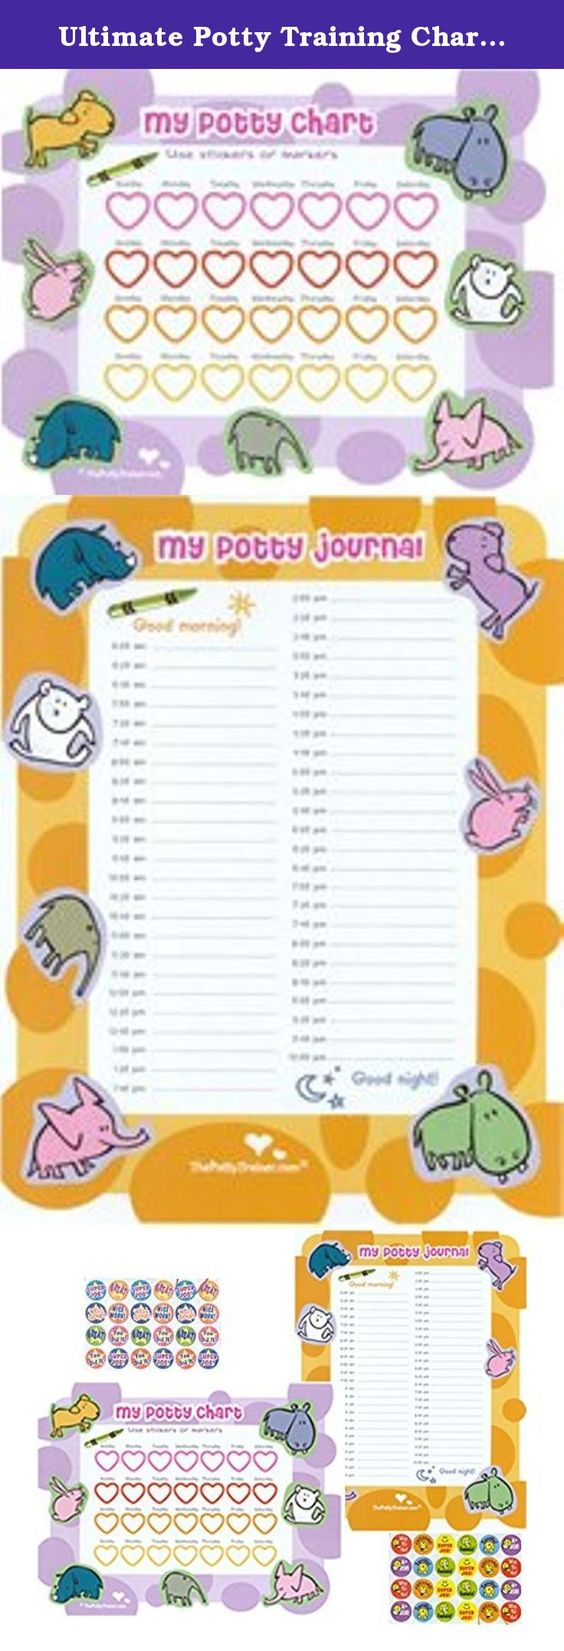 ultimate potty training charts for boys and potty training charts ultimate potty training charts for boys and potty training charts for girls the ultimate potty